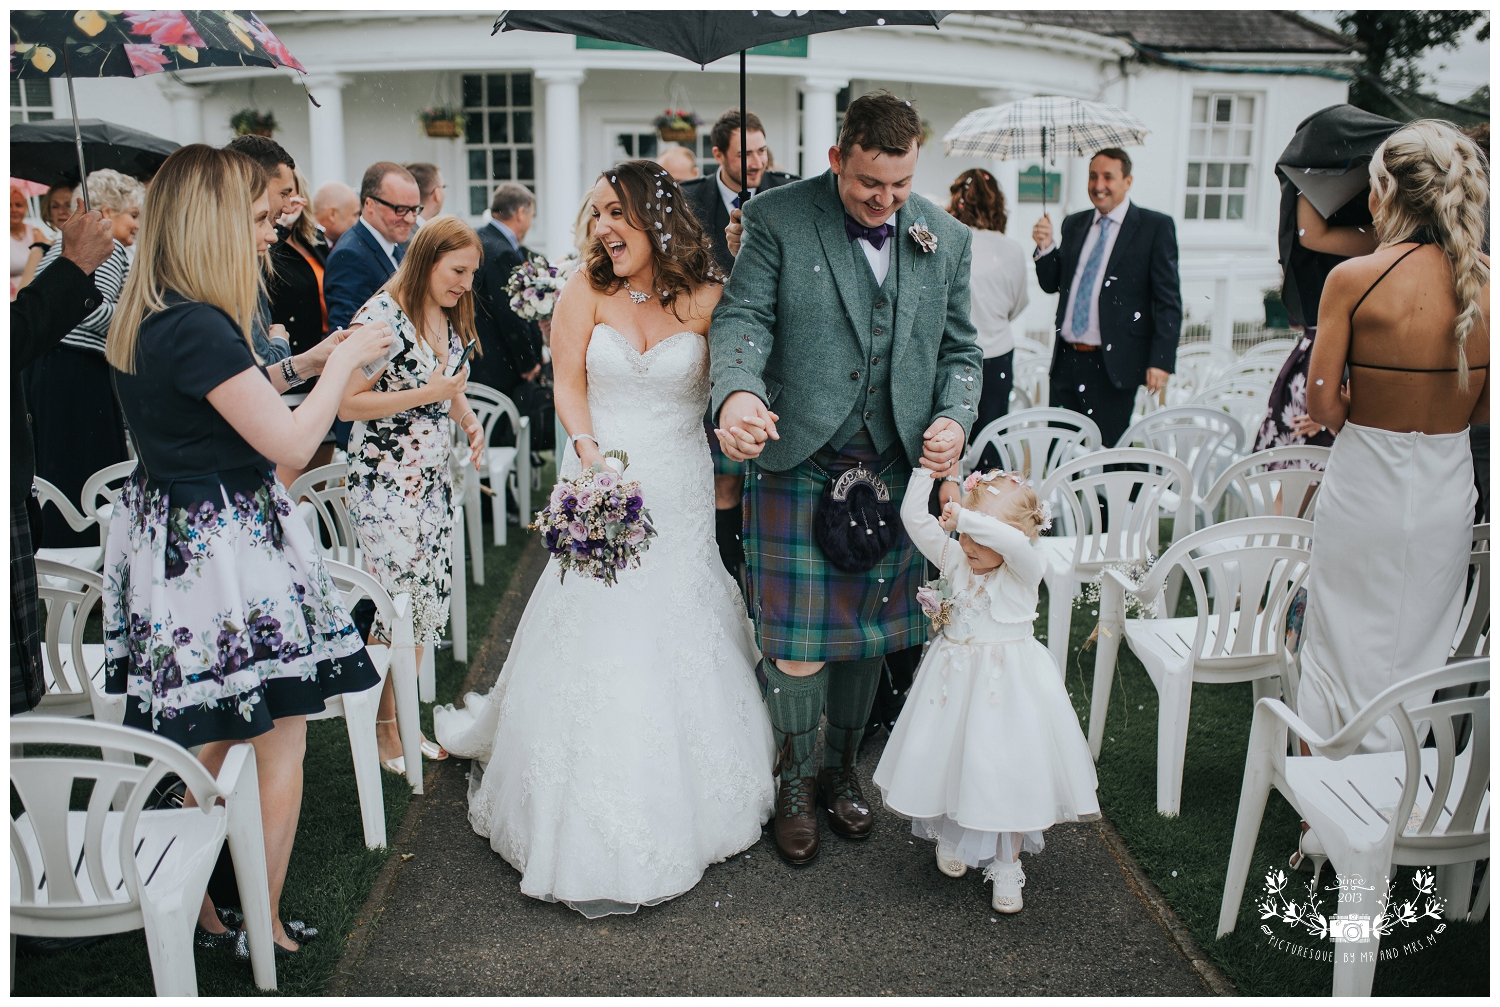 Hamilton Park Racecourse  wedding photography, Picturesque by Mr and Mrs M_0041.jpg